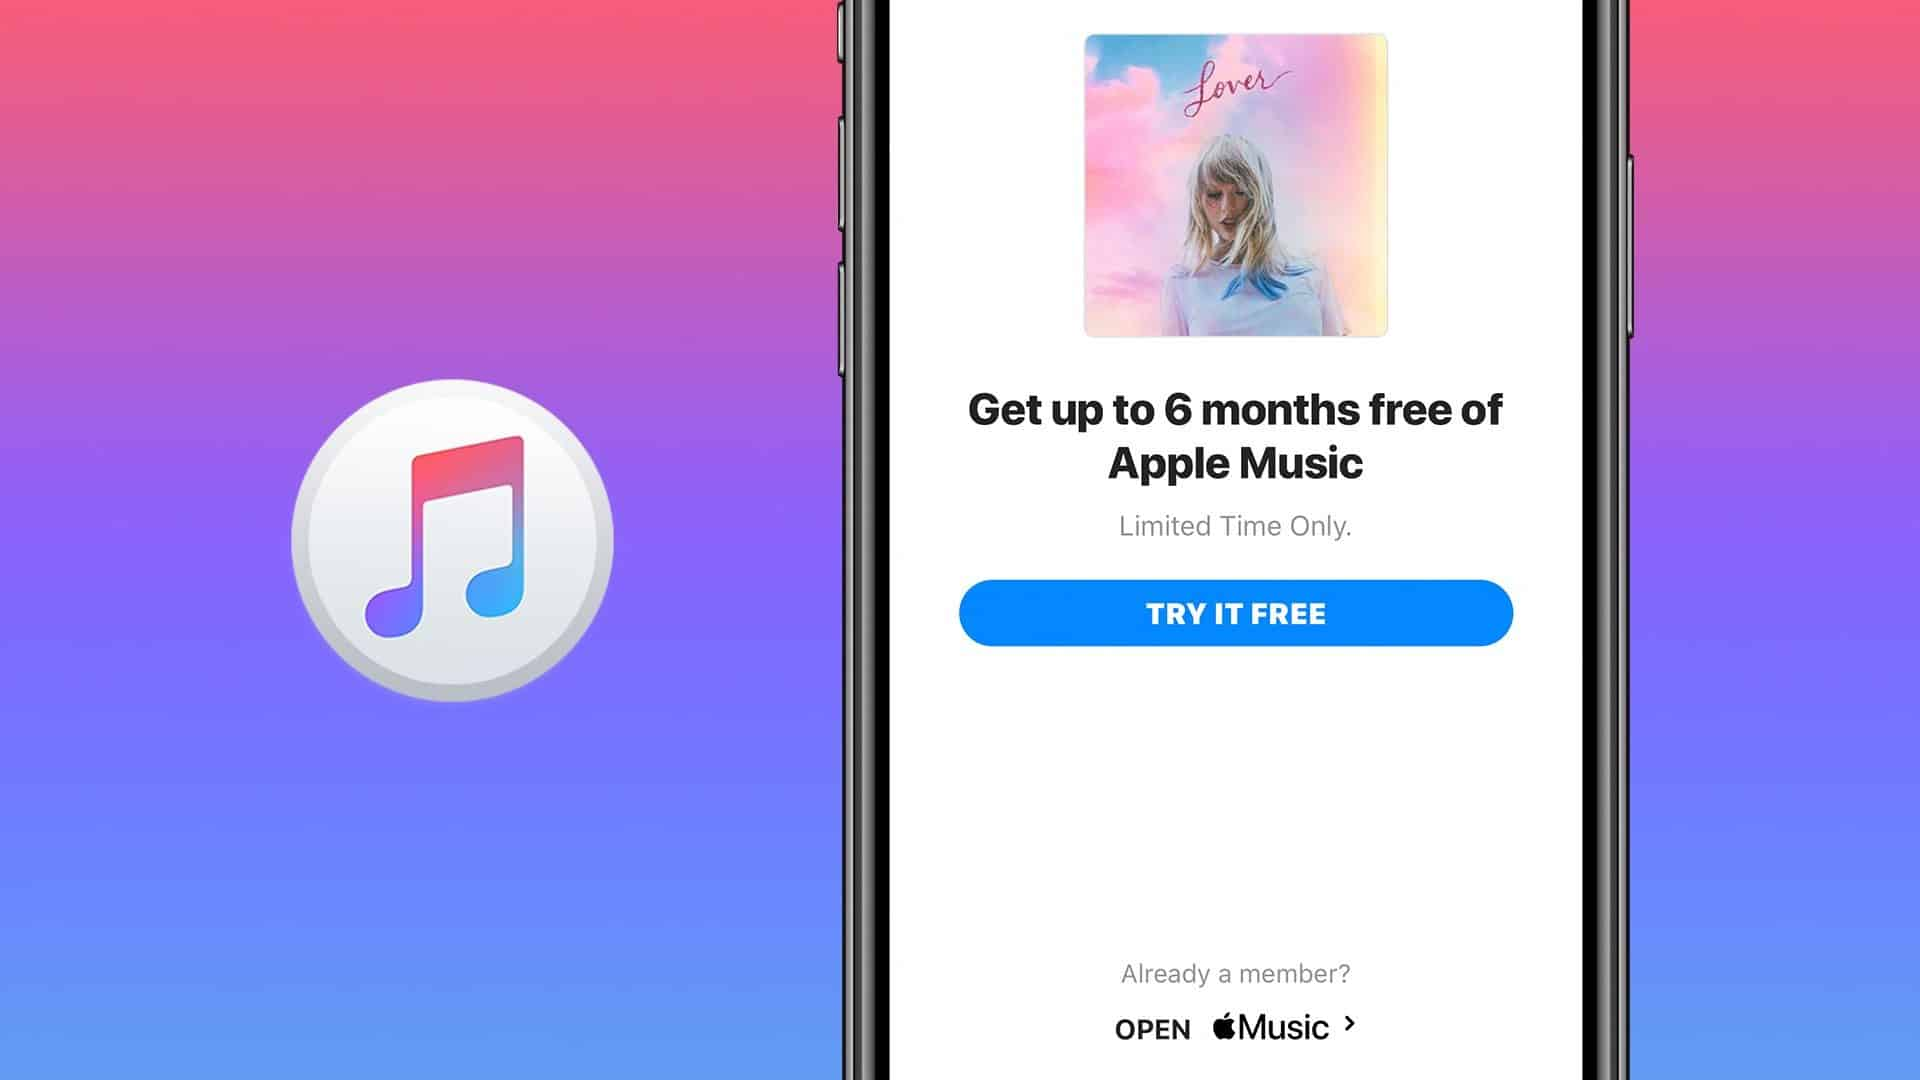 Apple Music free promotion